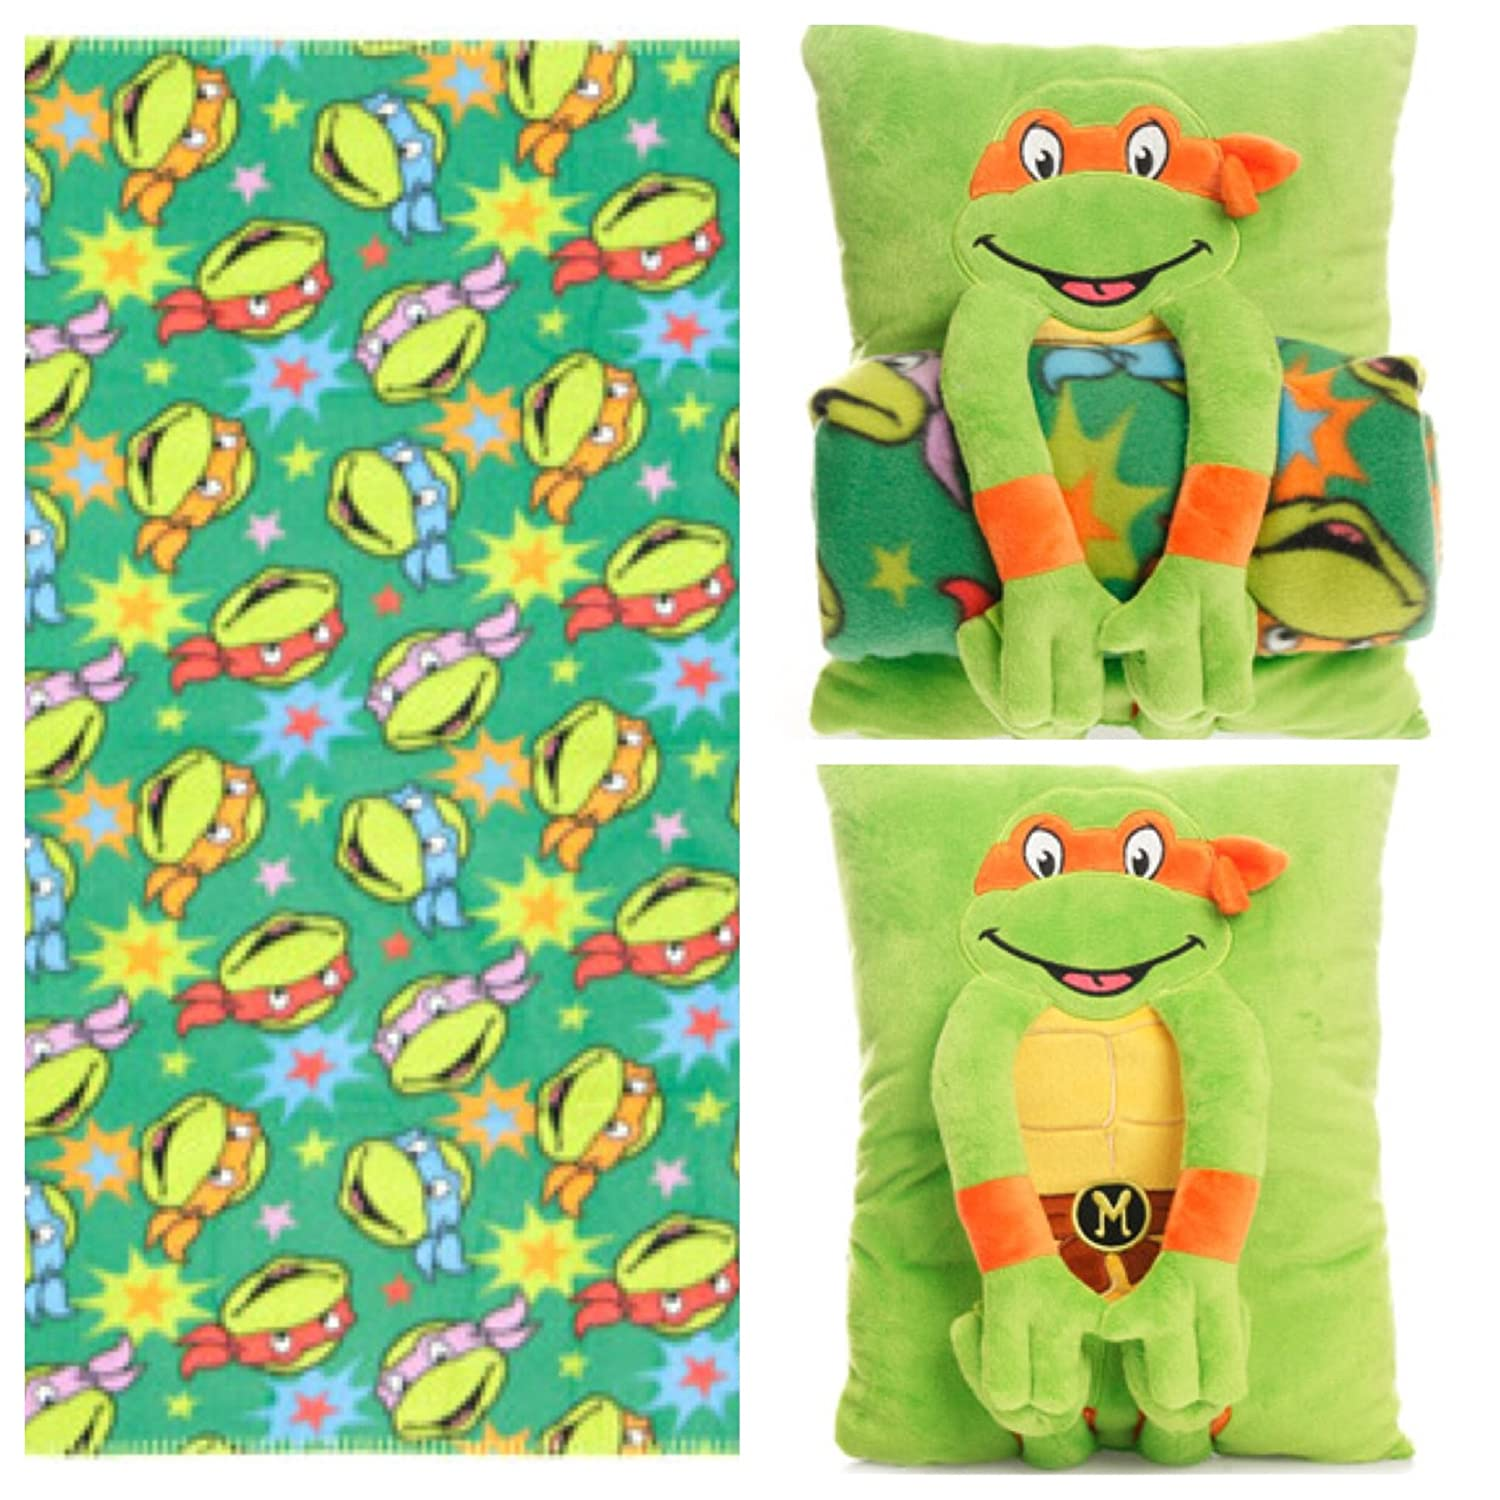 Nickelodeon Teenage Mutant Ninja Turtles Cuddle Time Snuggle Buddy Pillow / Blanket Set